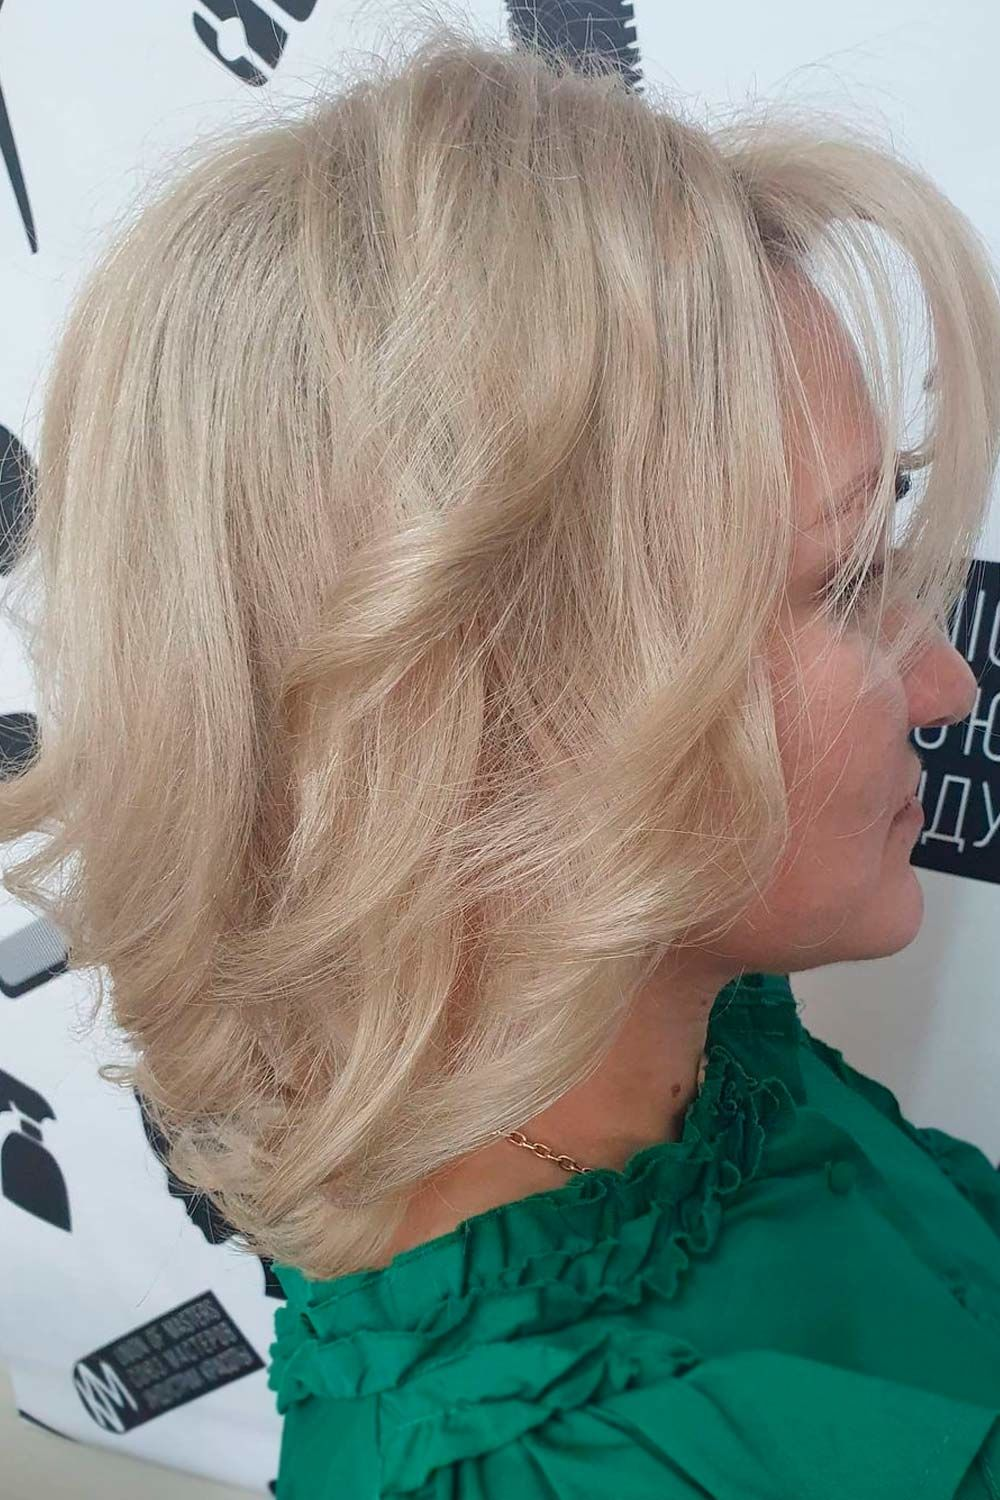 Short Haircuts For Women Over 50, bob haircuts for women over 40, best haircuts for women over 40, short haircuts for women over 40 with thick hair